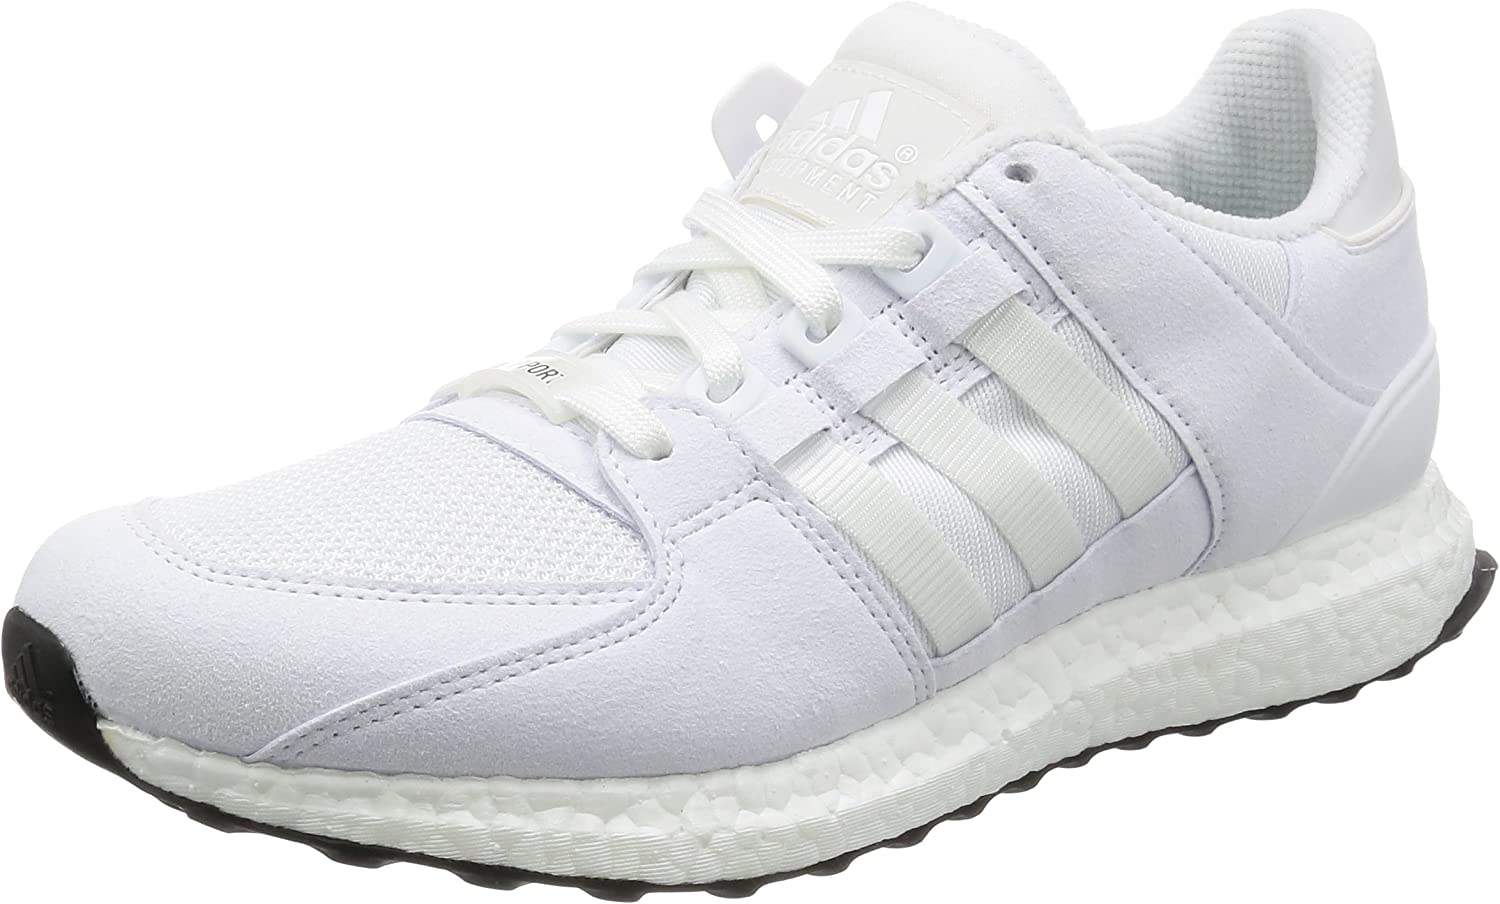 Adidas Equipment Support 93 16 Boost Sneaker White S79921